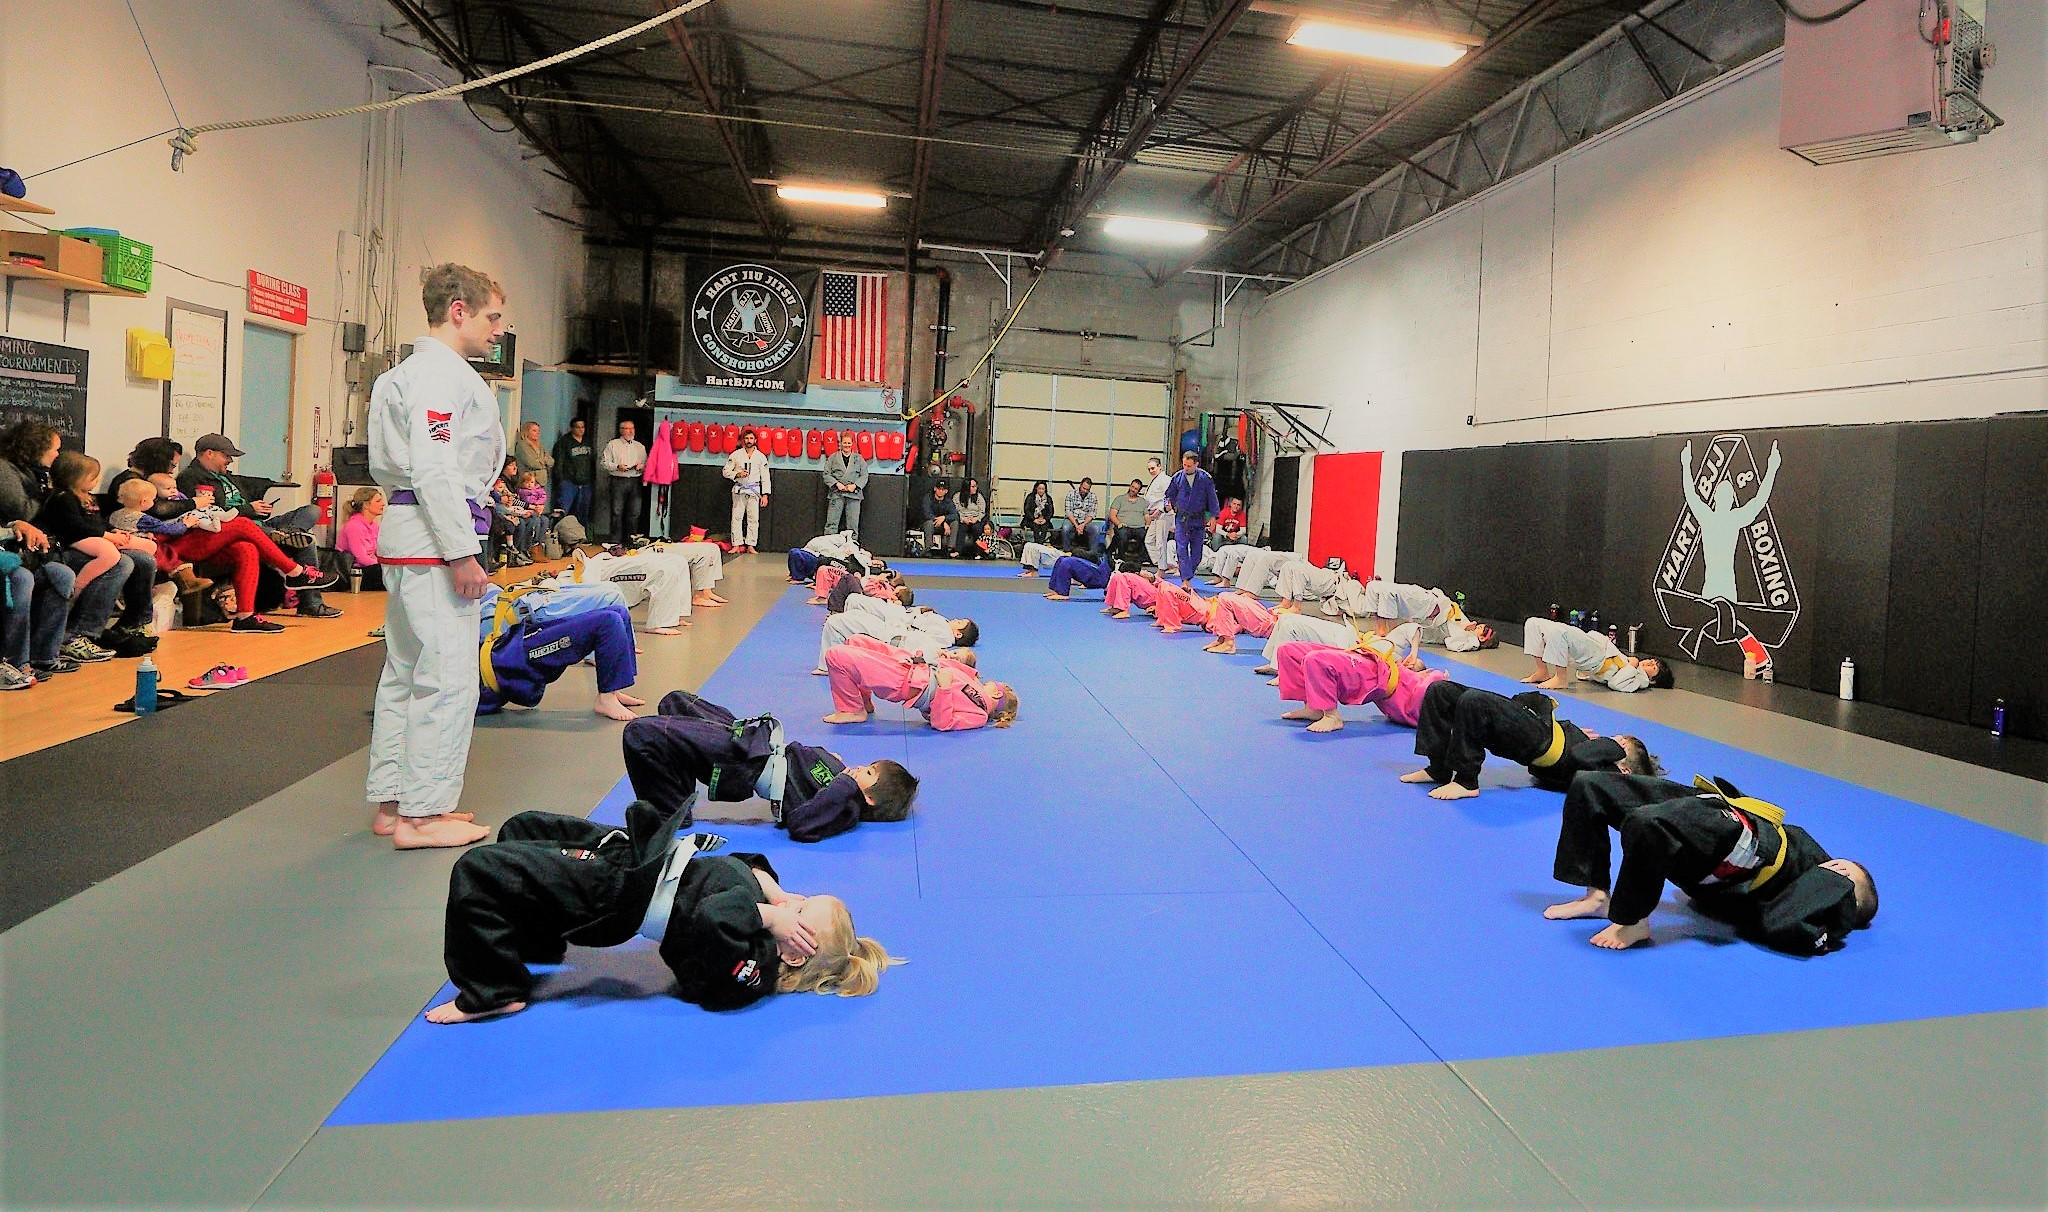 Conshohocken Kids Jiu Jitsu – Plymouth Meeting Kids Martial Arts